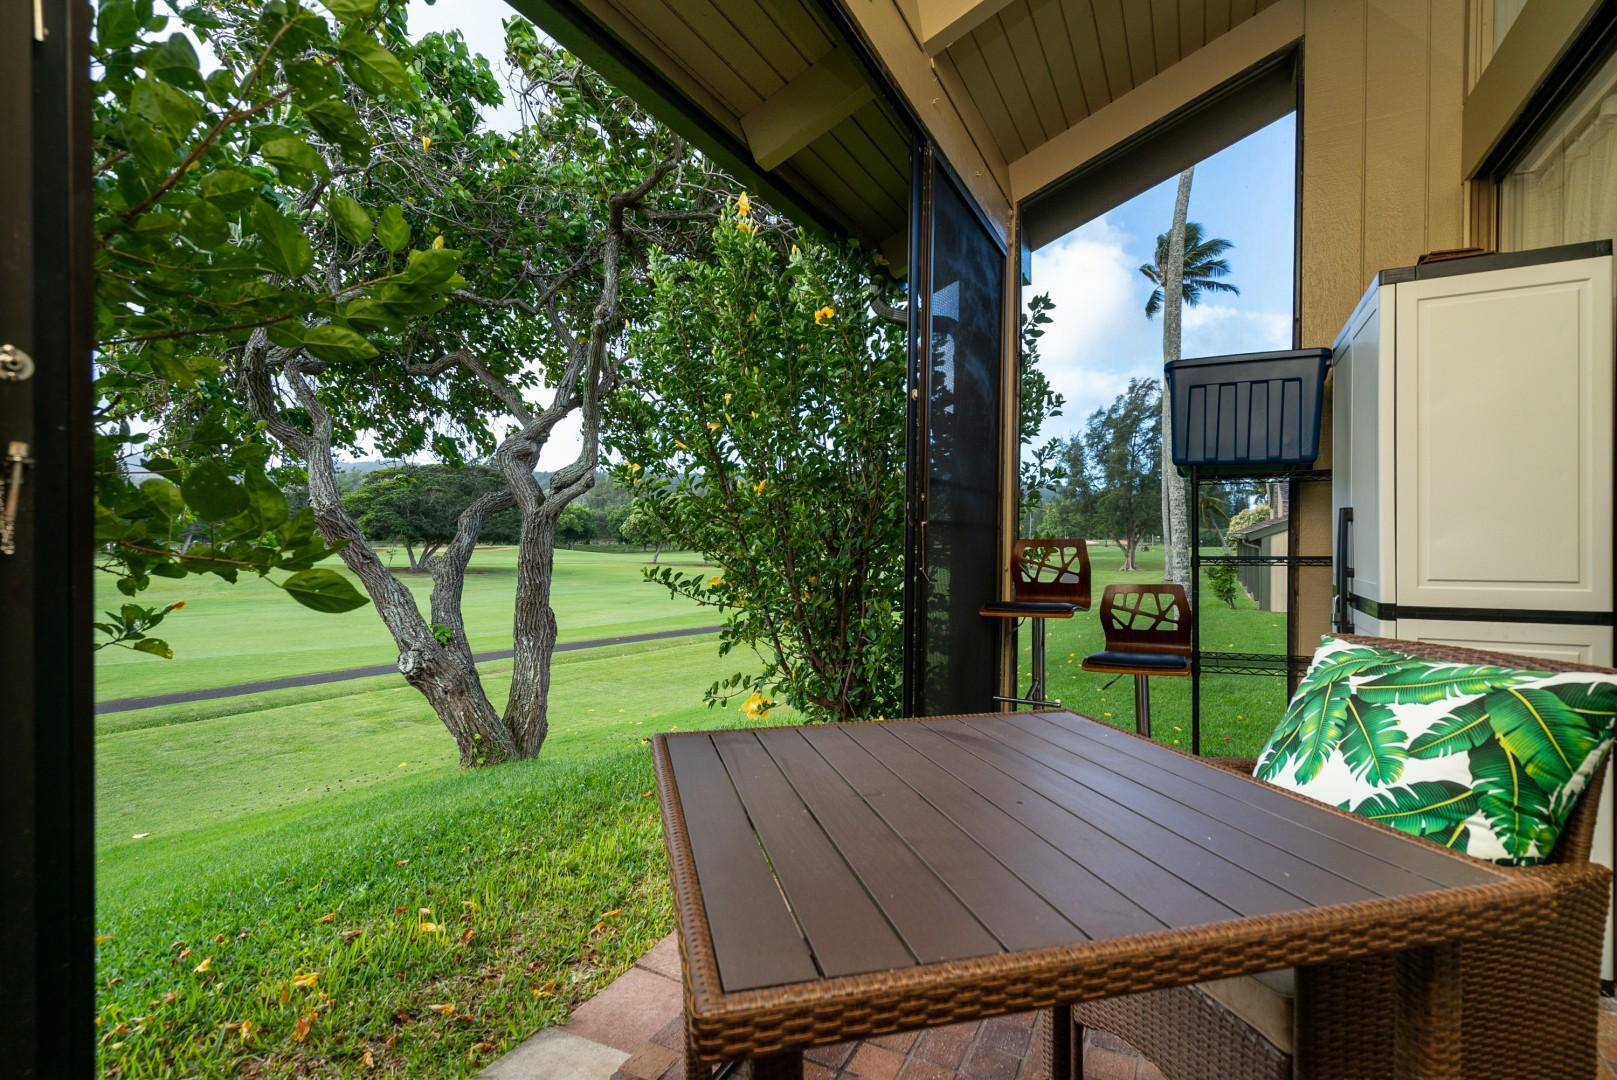 Outdoor patio with a view of the golf course